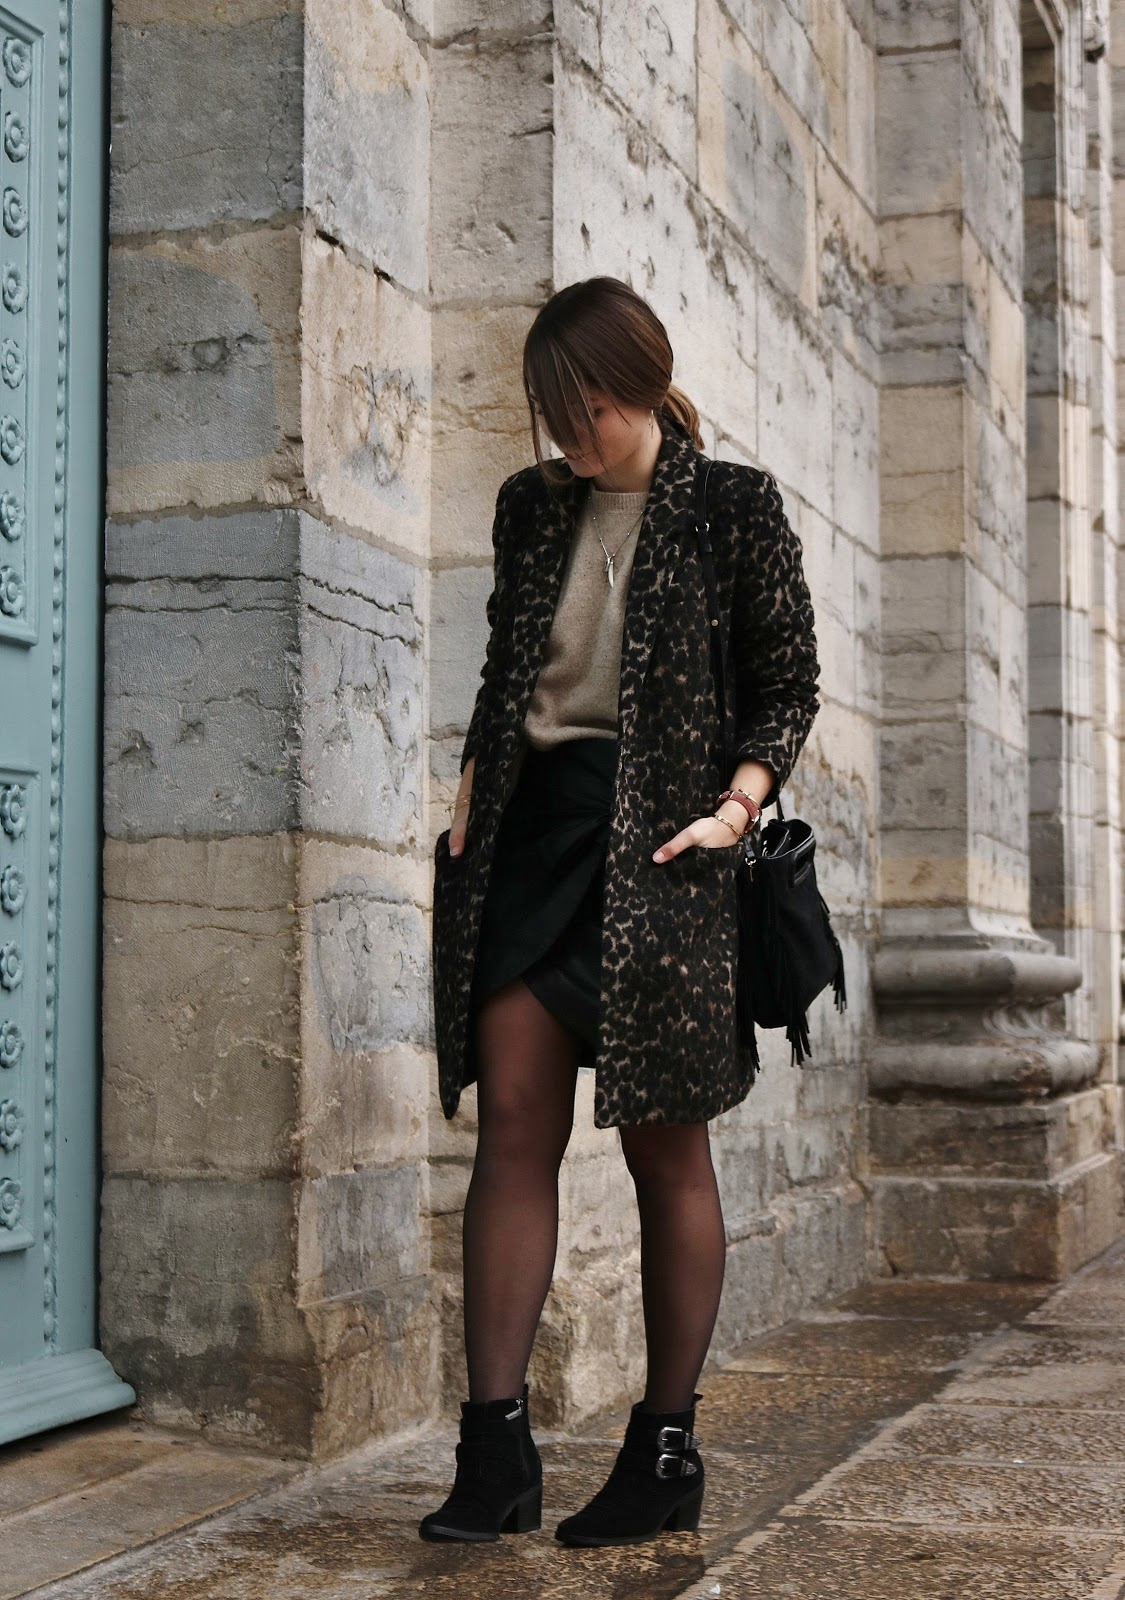 pauline-dress-blog-mode-besancon-deco-lifestyle-manteau-leopard-hiver-look-tenue-outfit-fashion-blogger-jupe-similicuir-nouee-mango-pull-sandro-suite-341